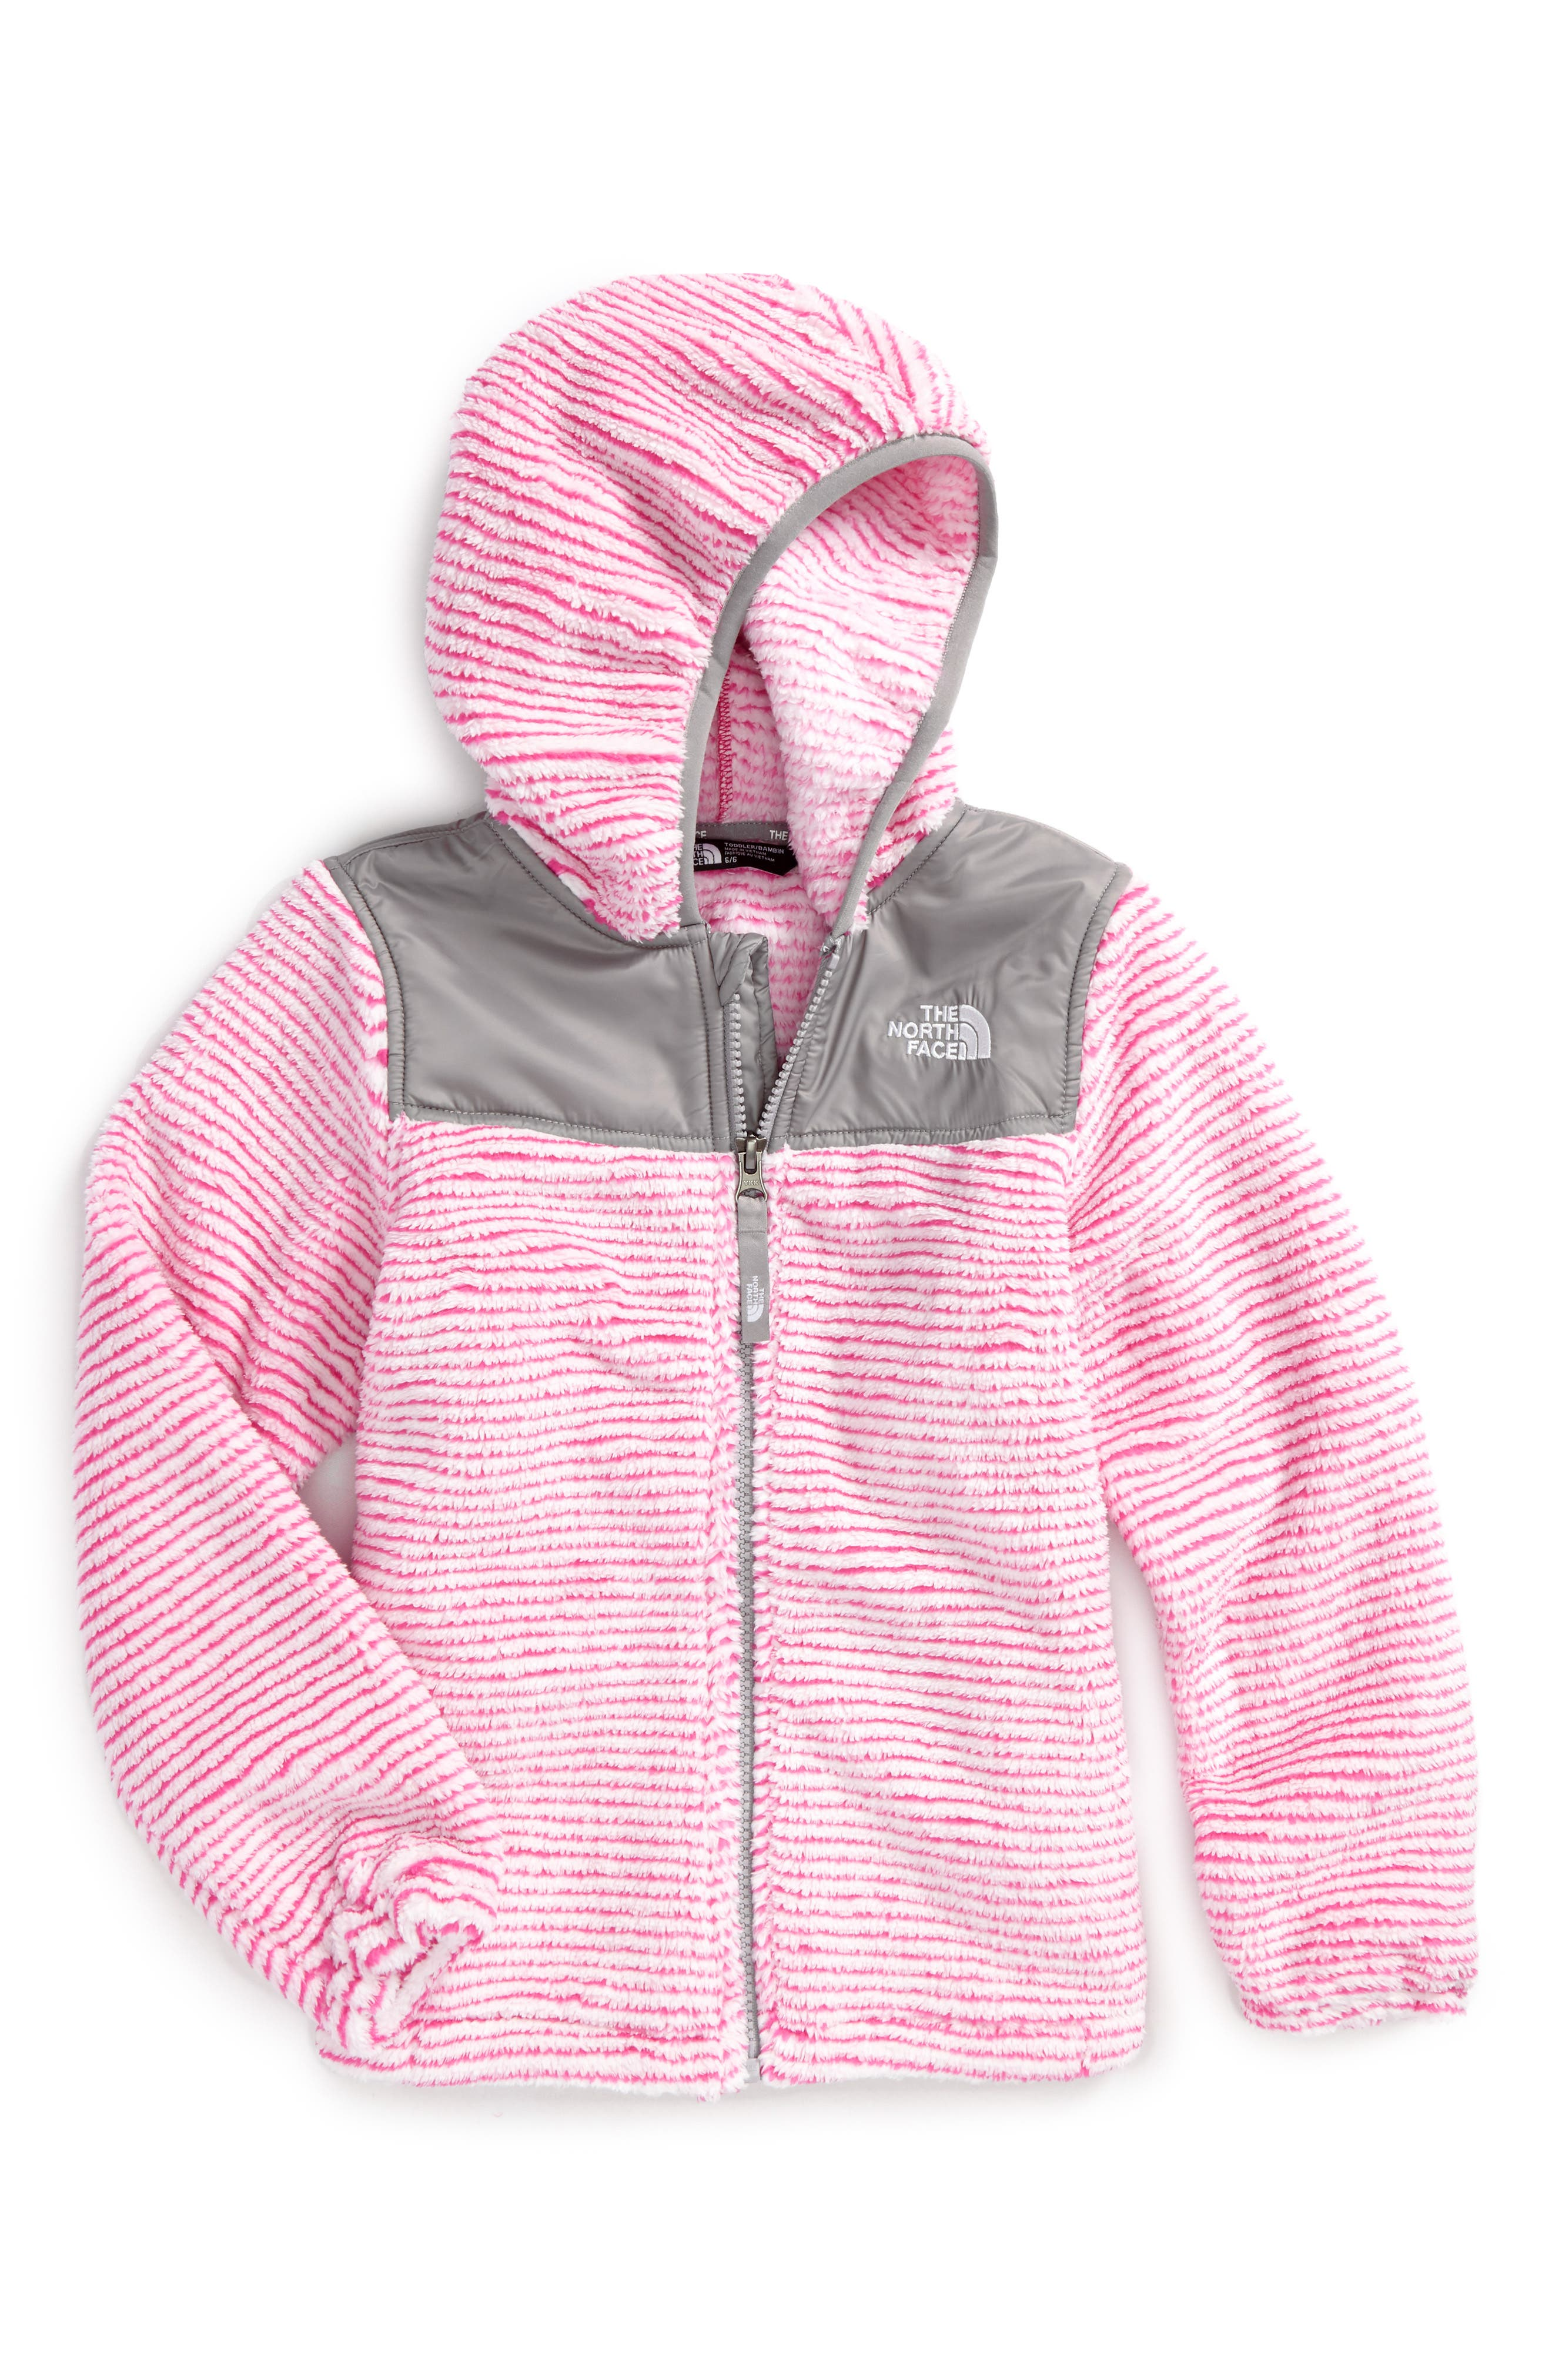 Alternate Image 1 Selected - The North Face Oso Fleece Hoodie (Toddler Girls & Little Girls)